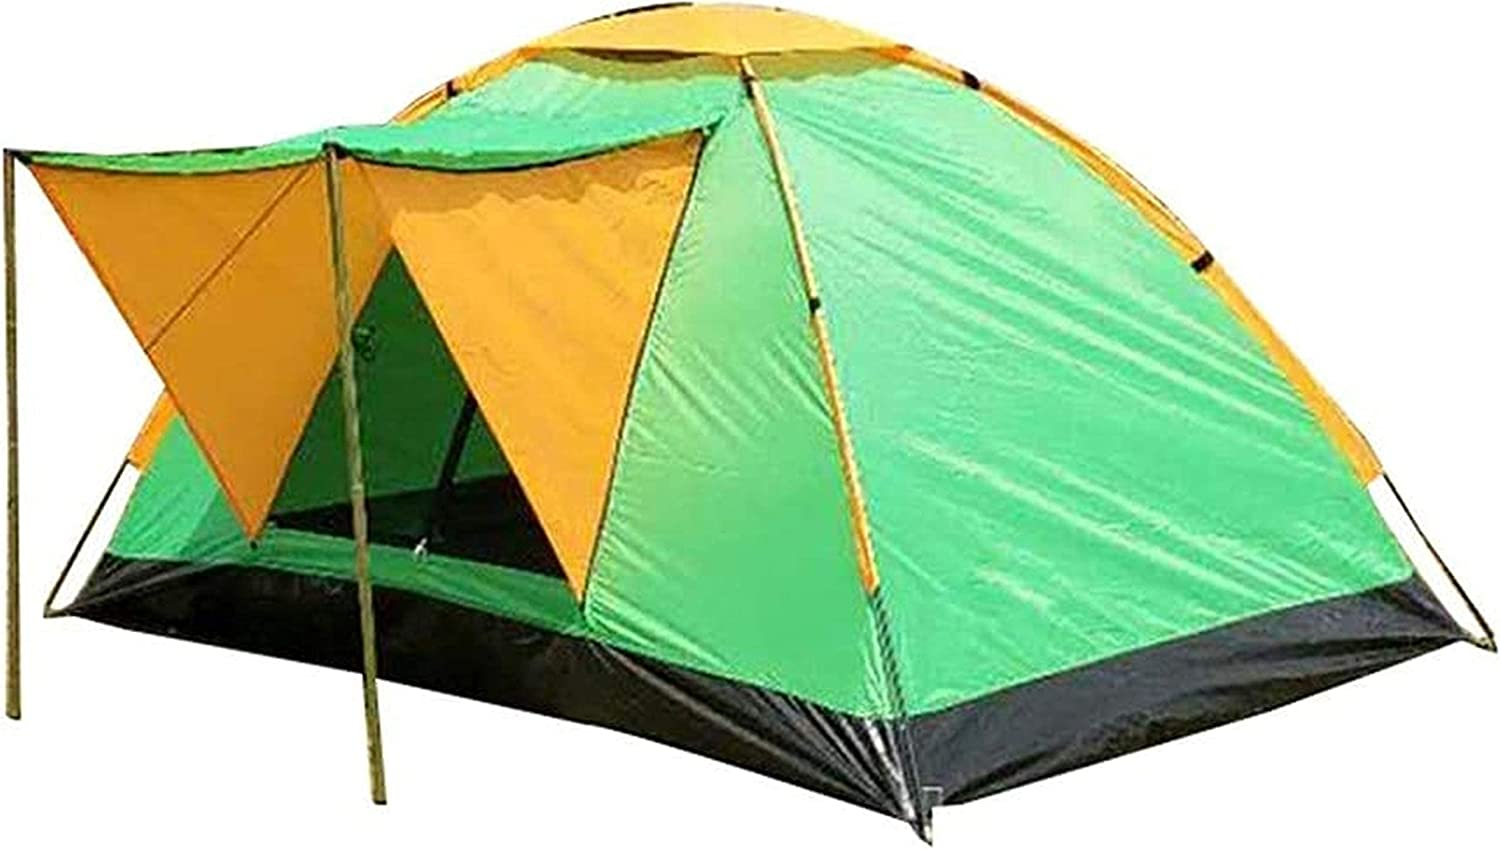 High quality YELLAYBY Max 62% OFF Lightweight Camping Tent Do Outdoor Portable